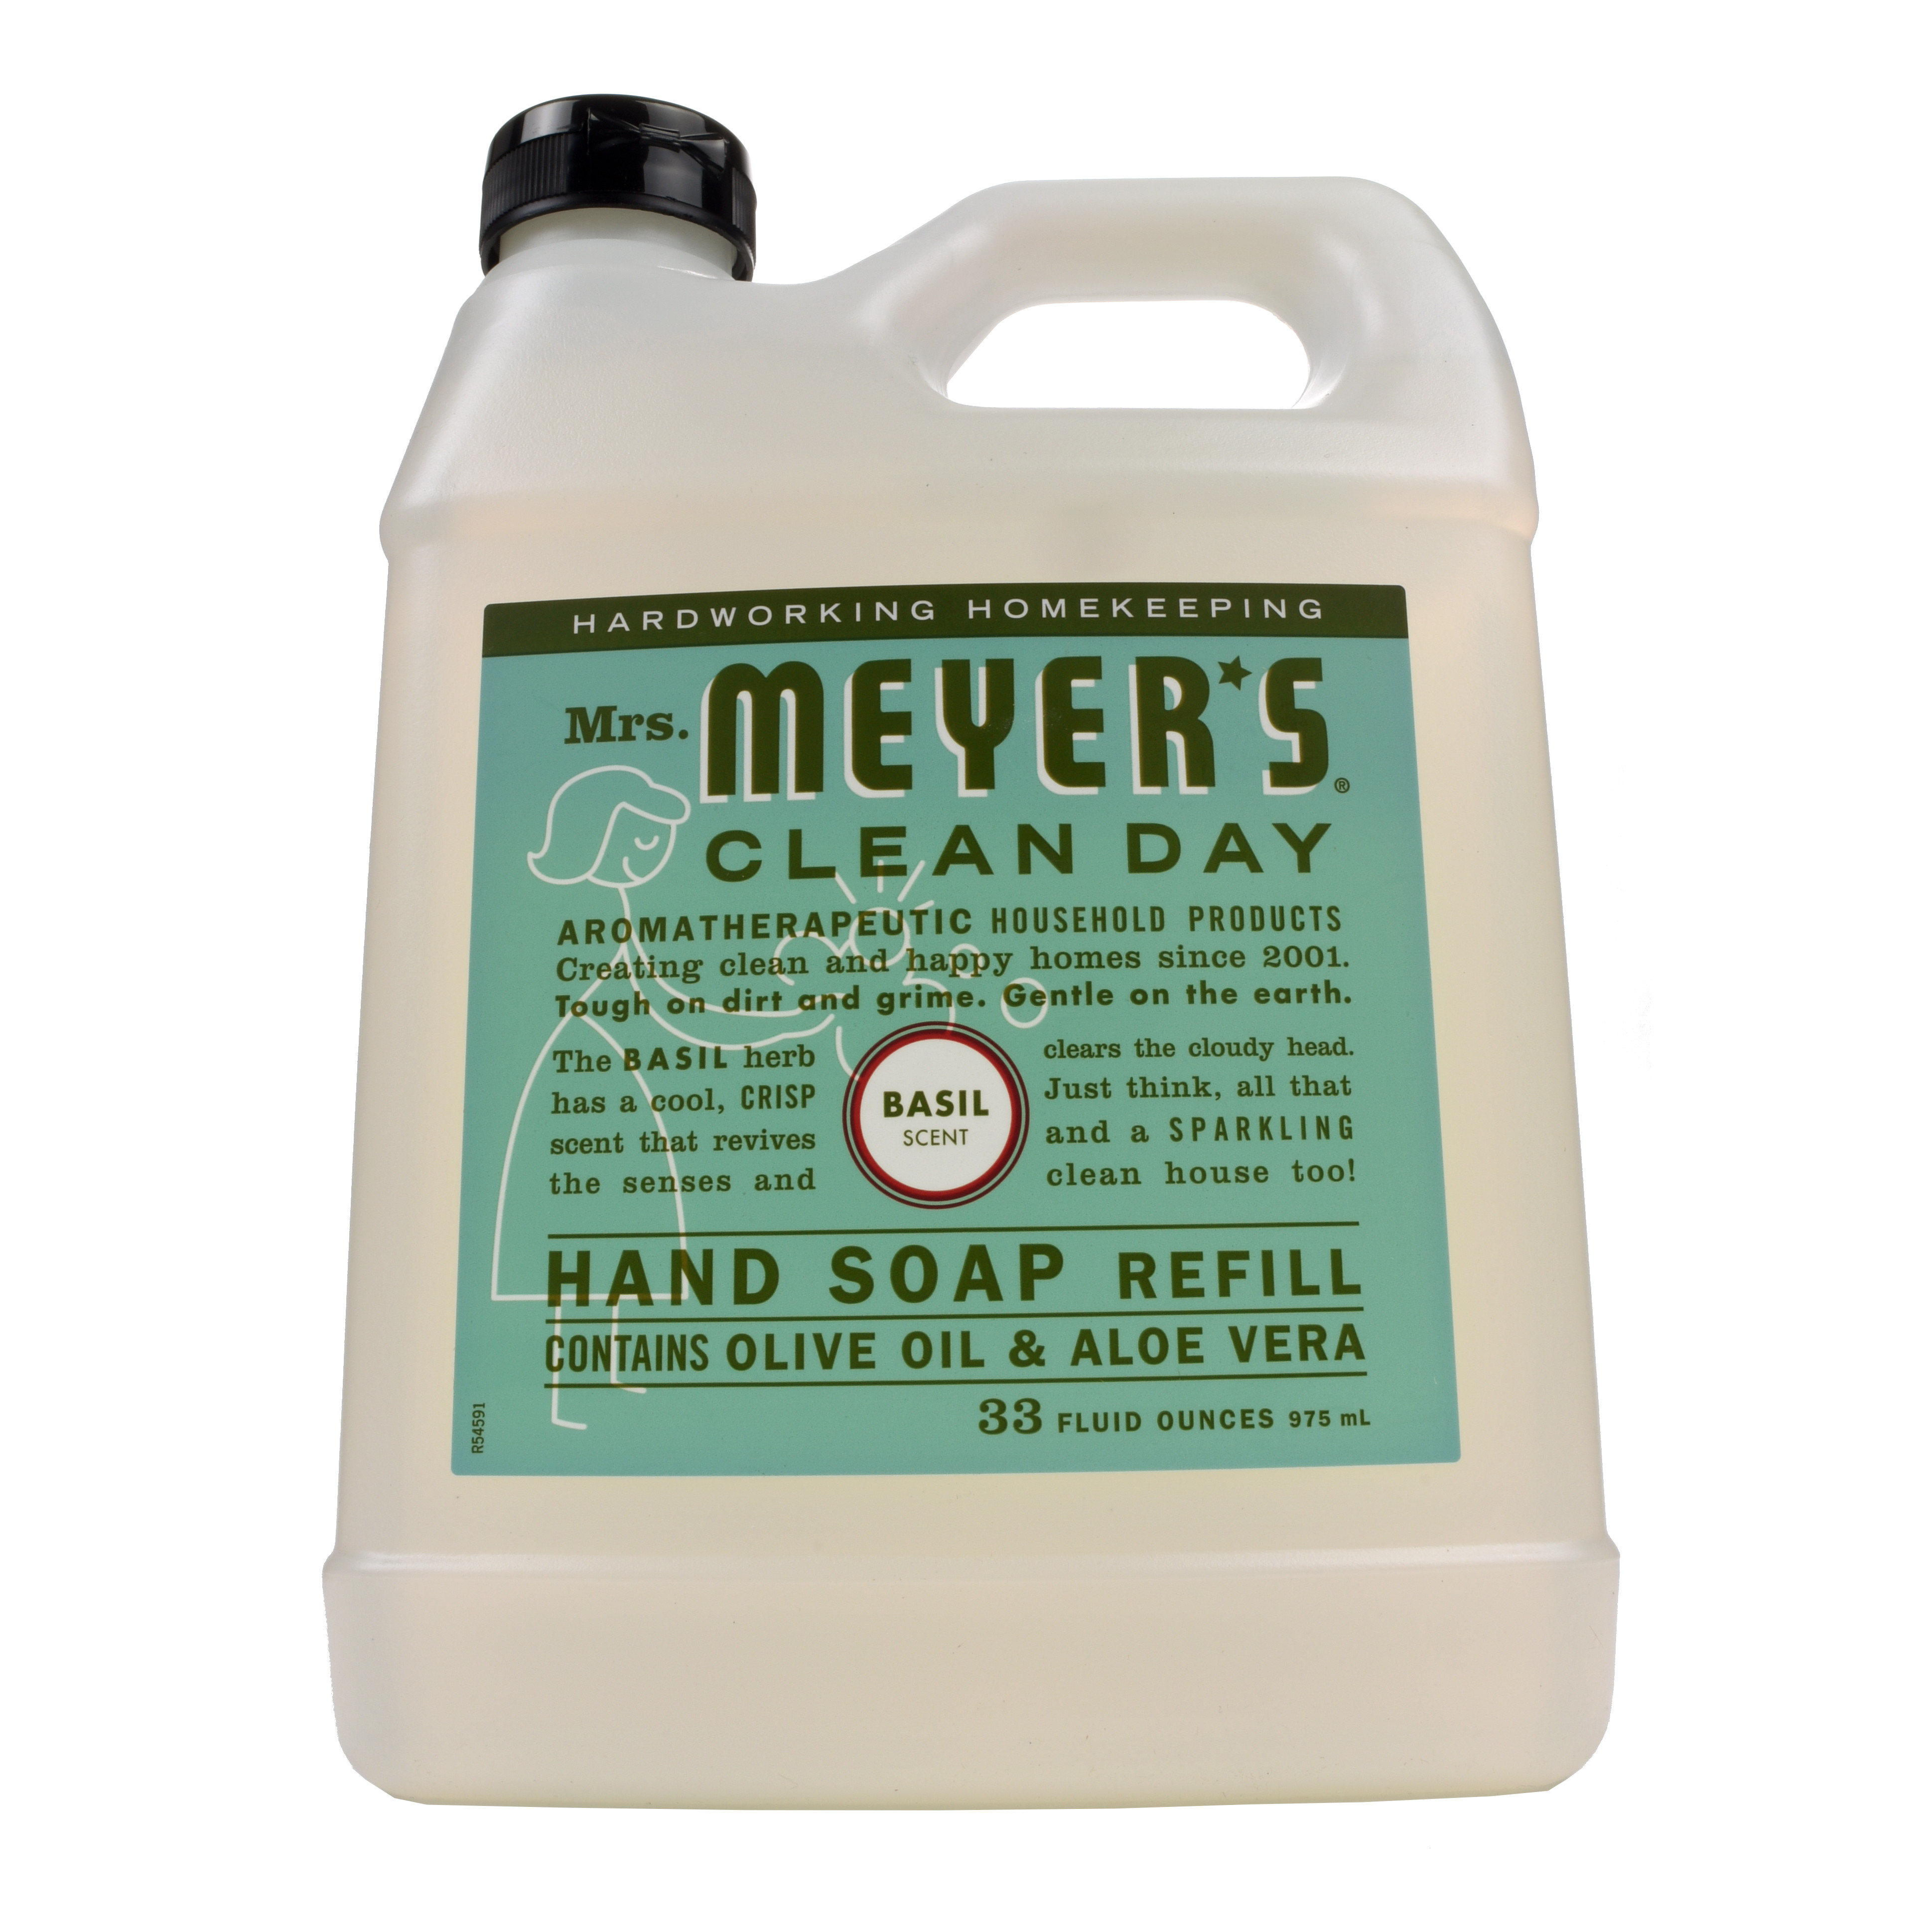 Mrs. Meyers Clean Day Hand Soap Refill, Basil Scent 33 oz